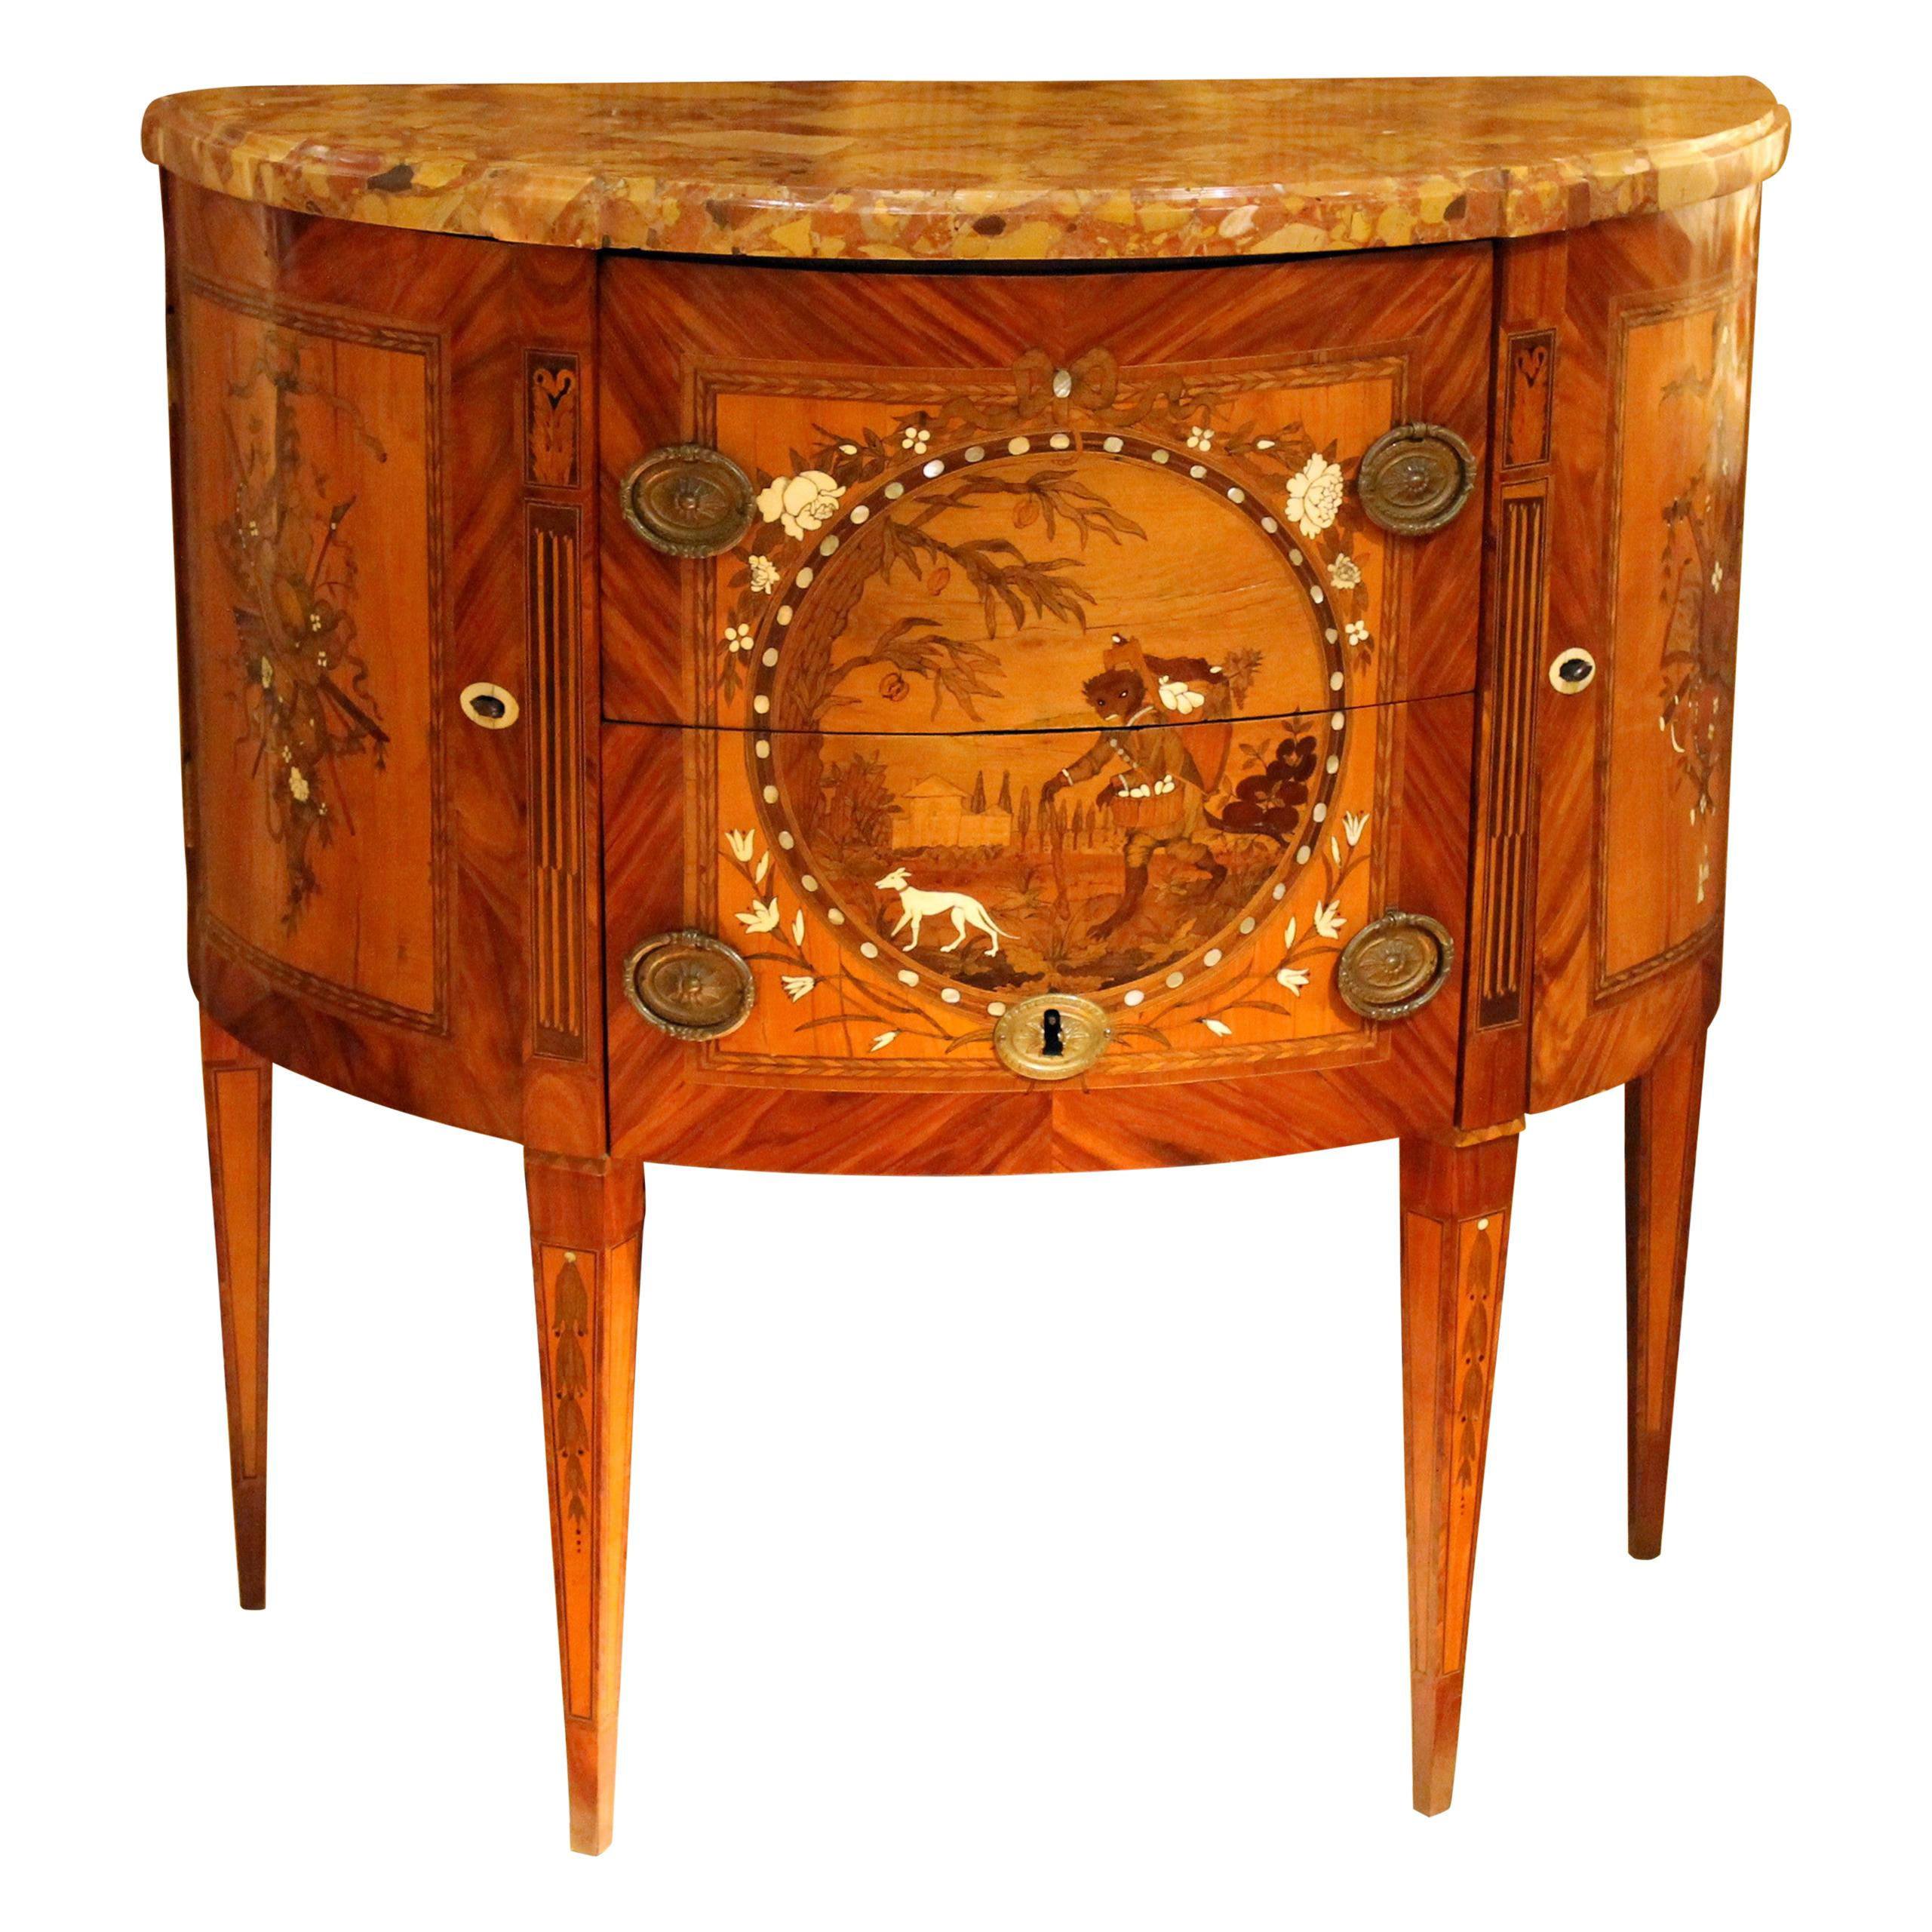 Antique Louis XVI French Demilune Marquetry Chest of Drawers Stamped Tondeur